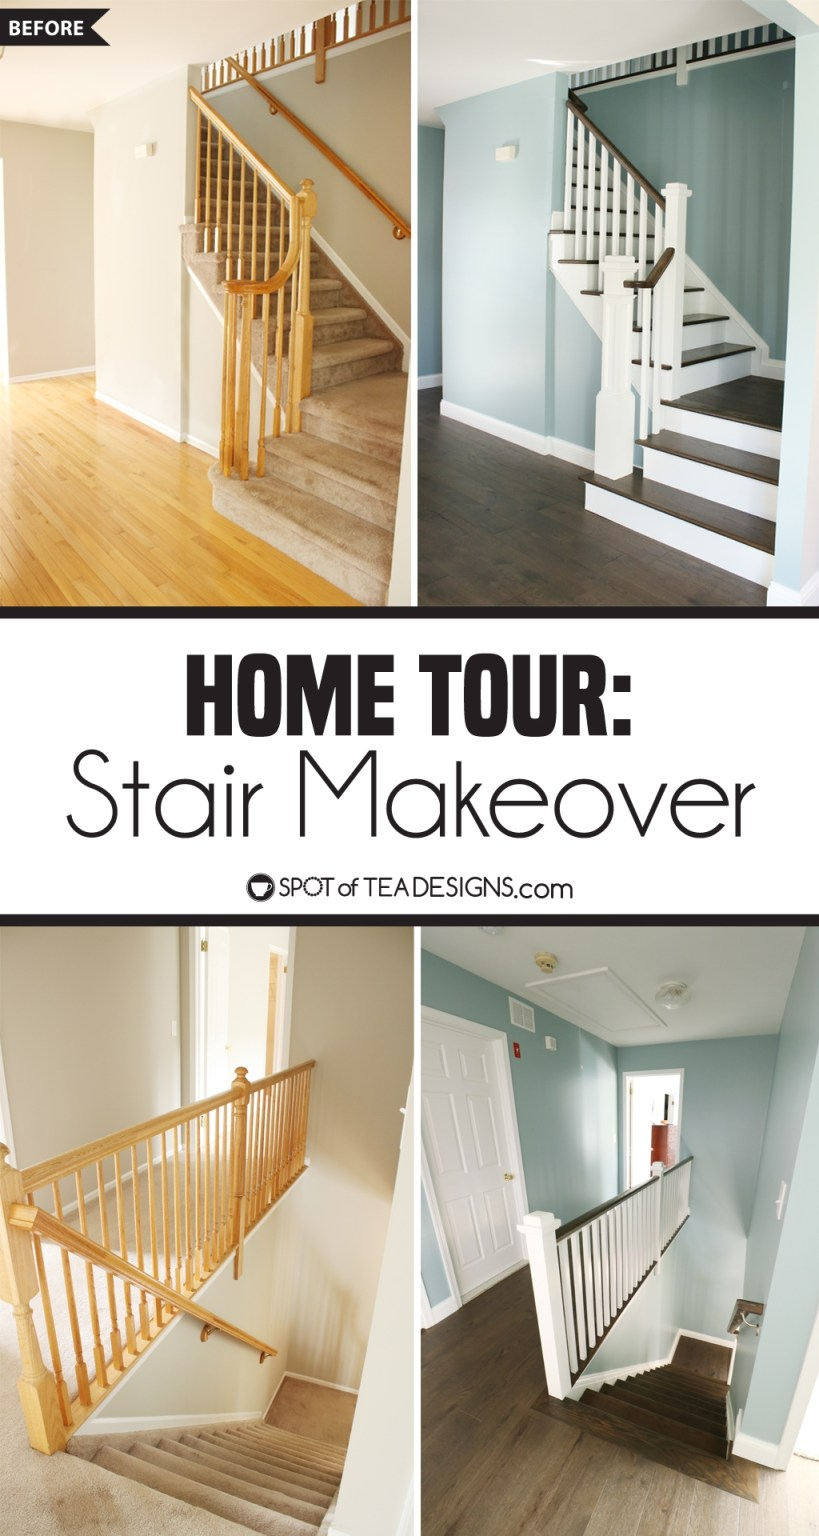 Home Tour | stair makeover showcasing an update of an outdated carpeted stairwell to a modern look | spotofteadesigns.com